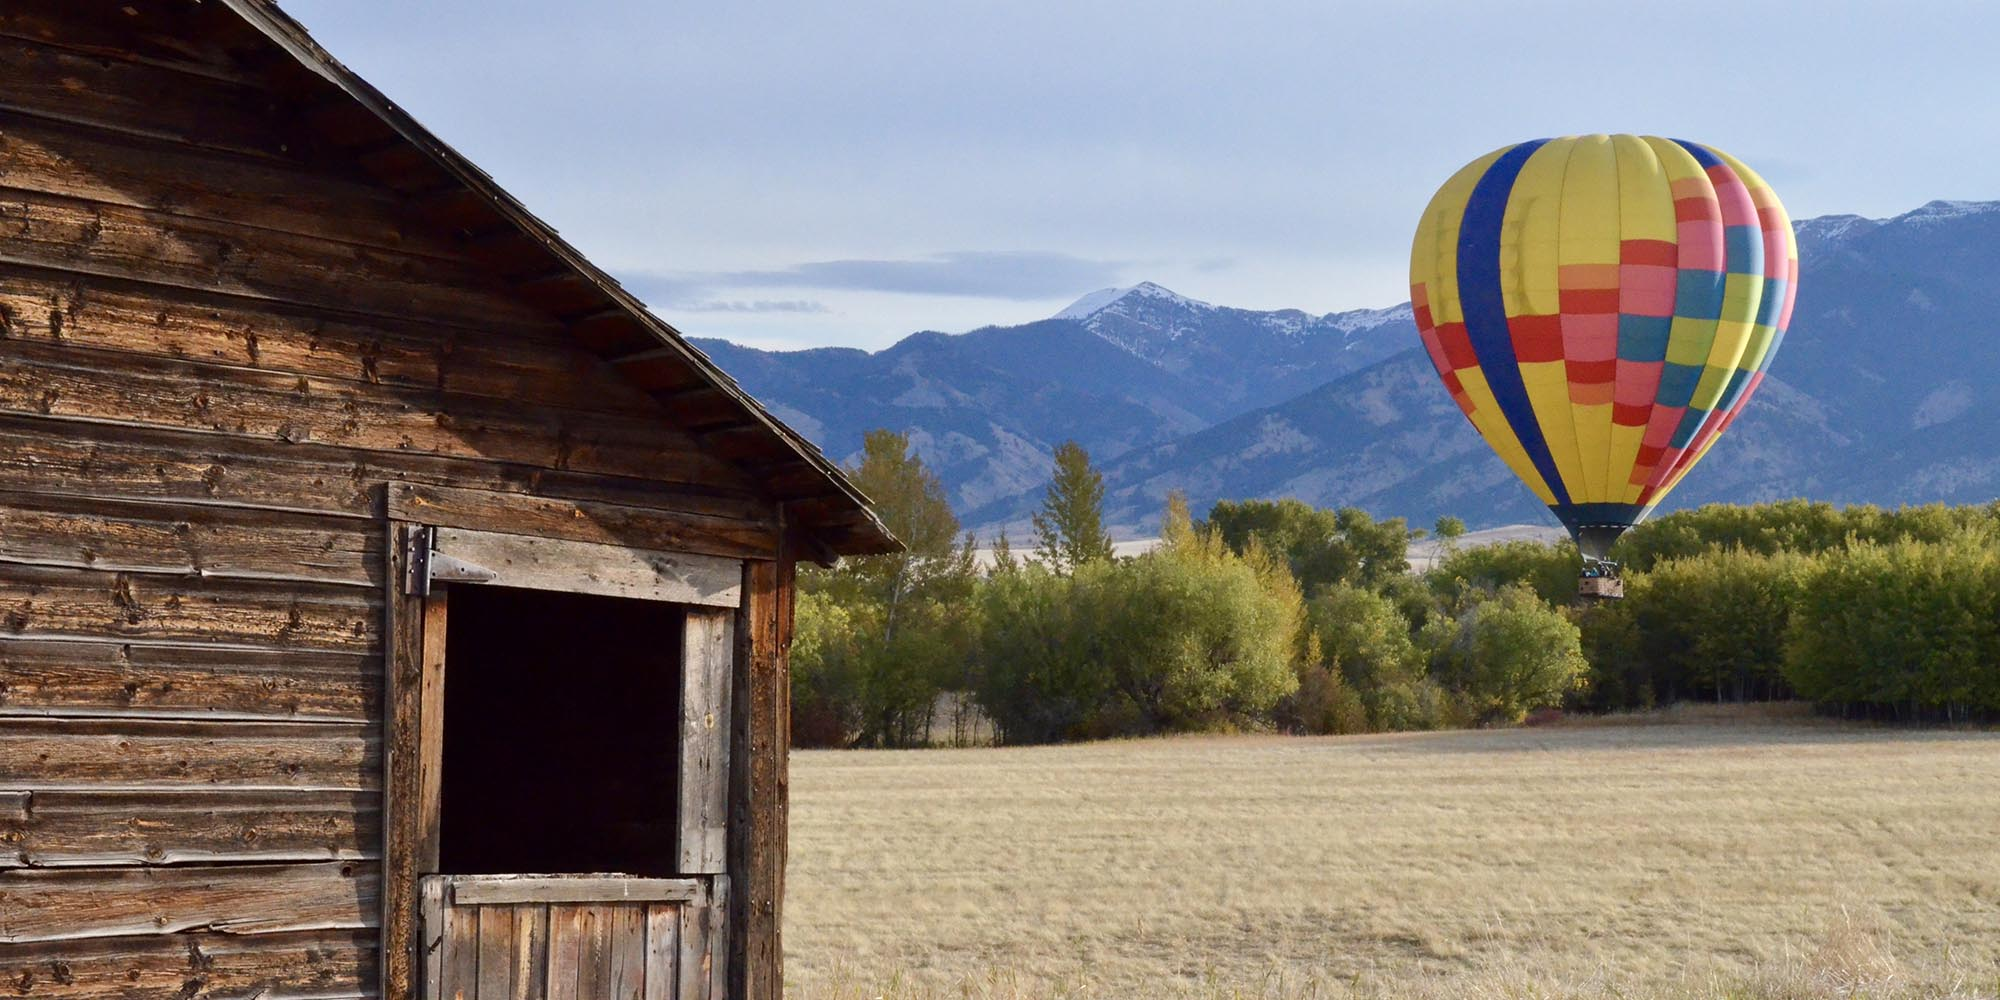 Montana Ballooning Questions